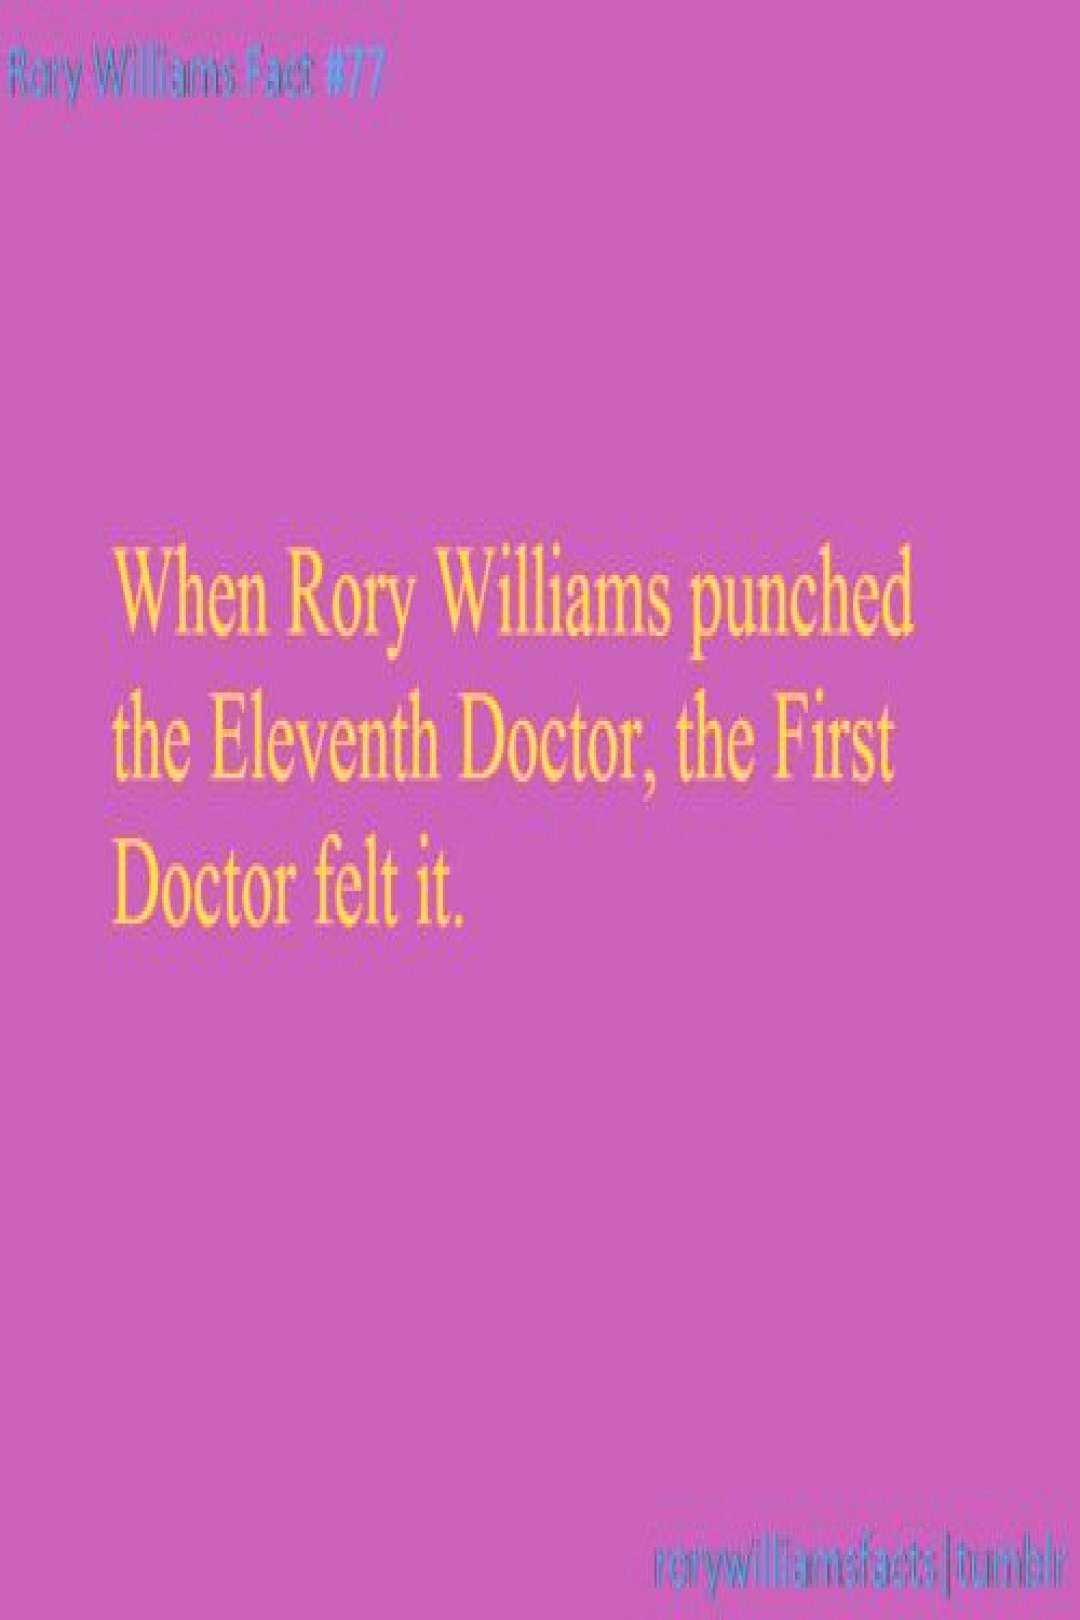 Rory Williams Facts Doctor Who Rory williams facts ; rory williams fakten ; rory williams faits ; r